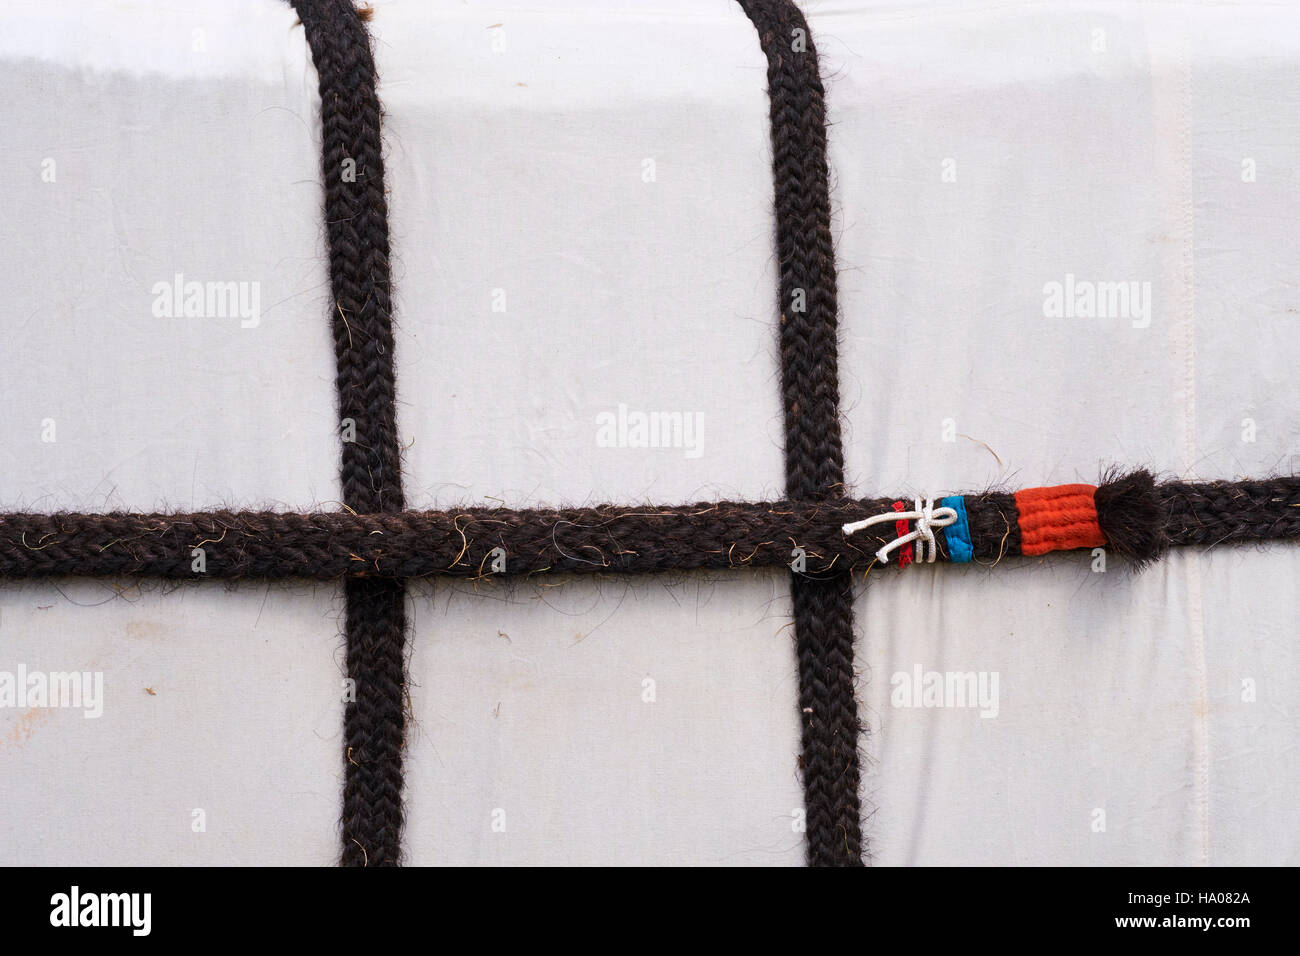 Mongolia, Uvs province, western Mongolia, detail of a Mongolian yurt, the rope made with yak's hair - Stock Image